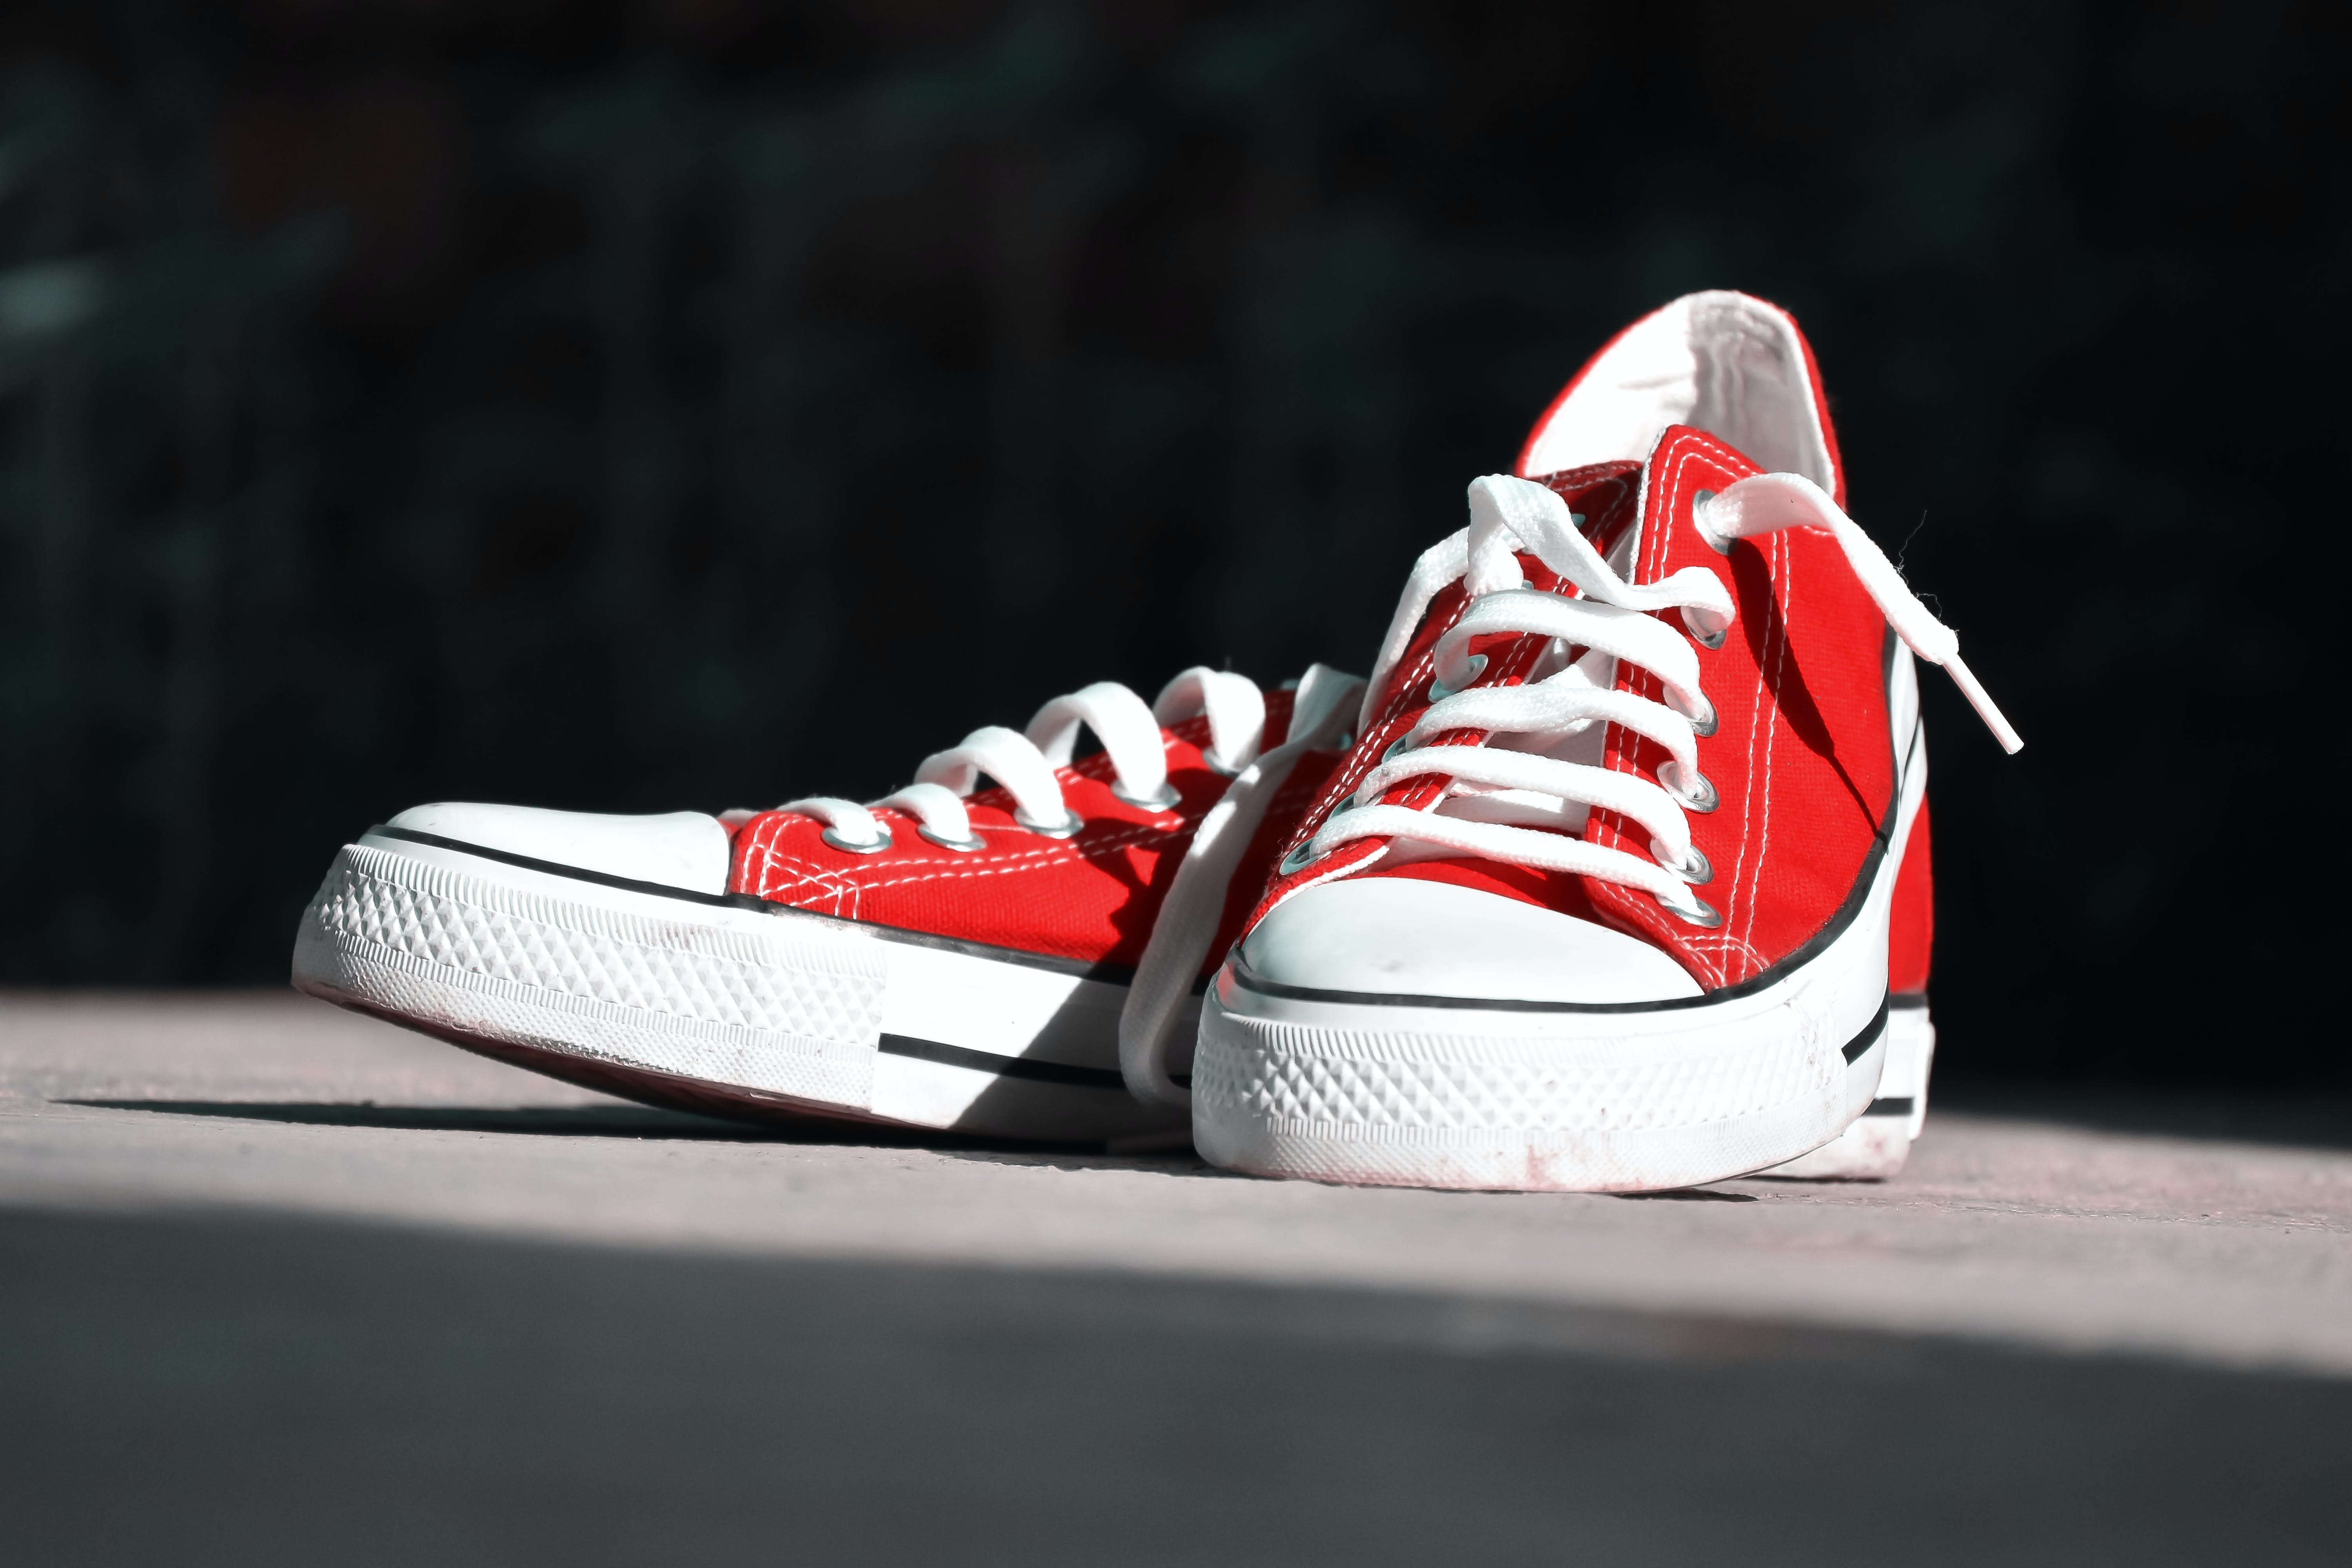 Shallow Focus Photography of Pair of Red Low-top Sneakers